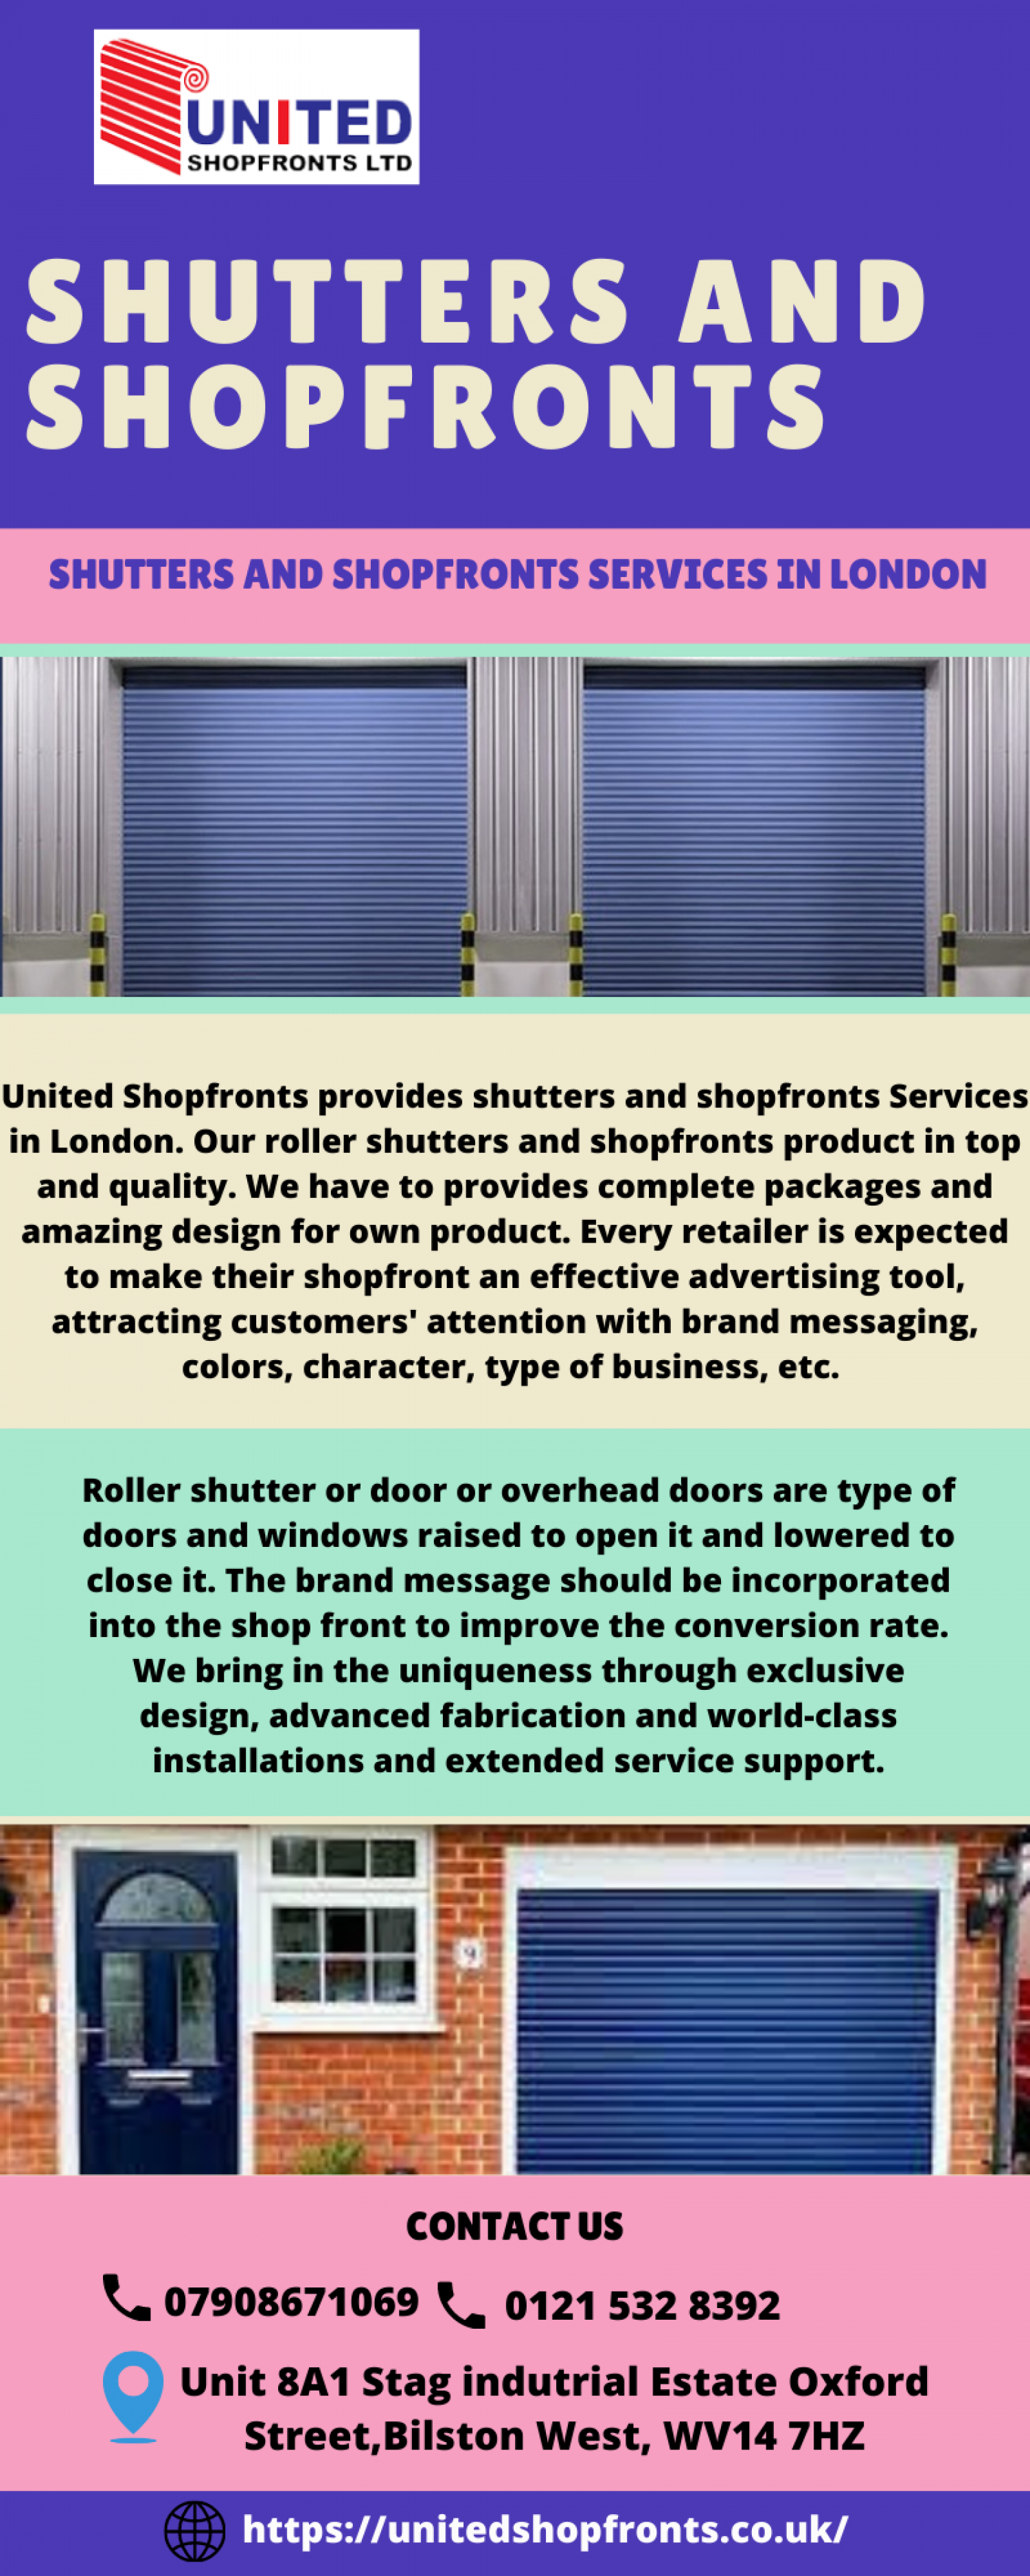 Shutters and Shopfronts Services in London Infographic